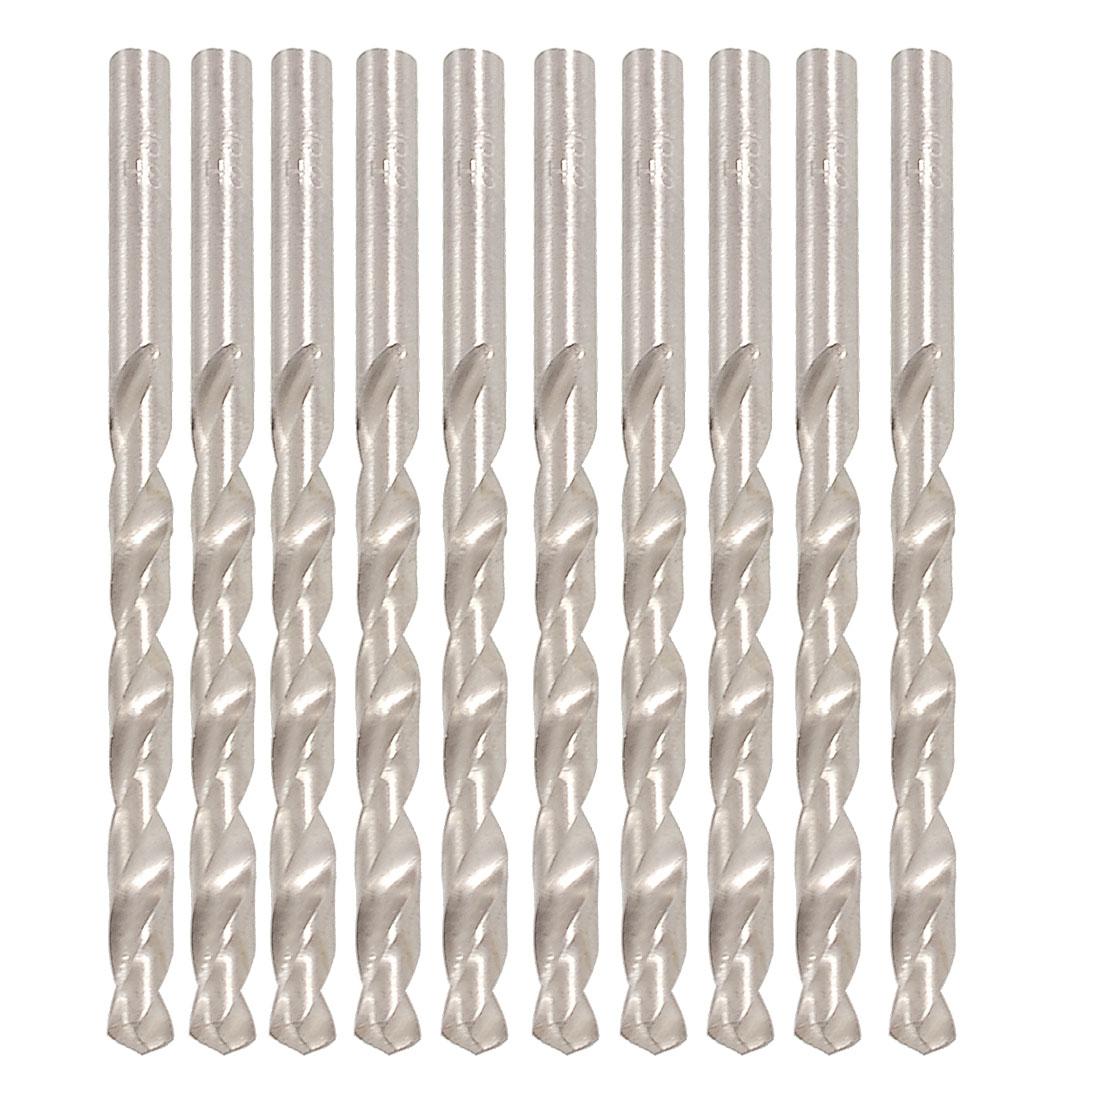 10 x Replacement 5mm Dia Spiral Flute Straight Shank Twist Electric Drill Bit